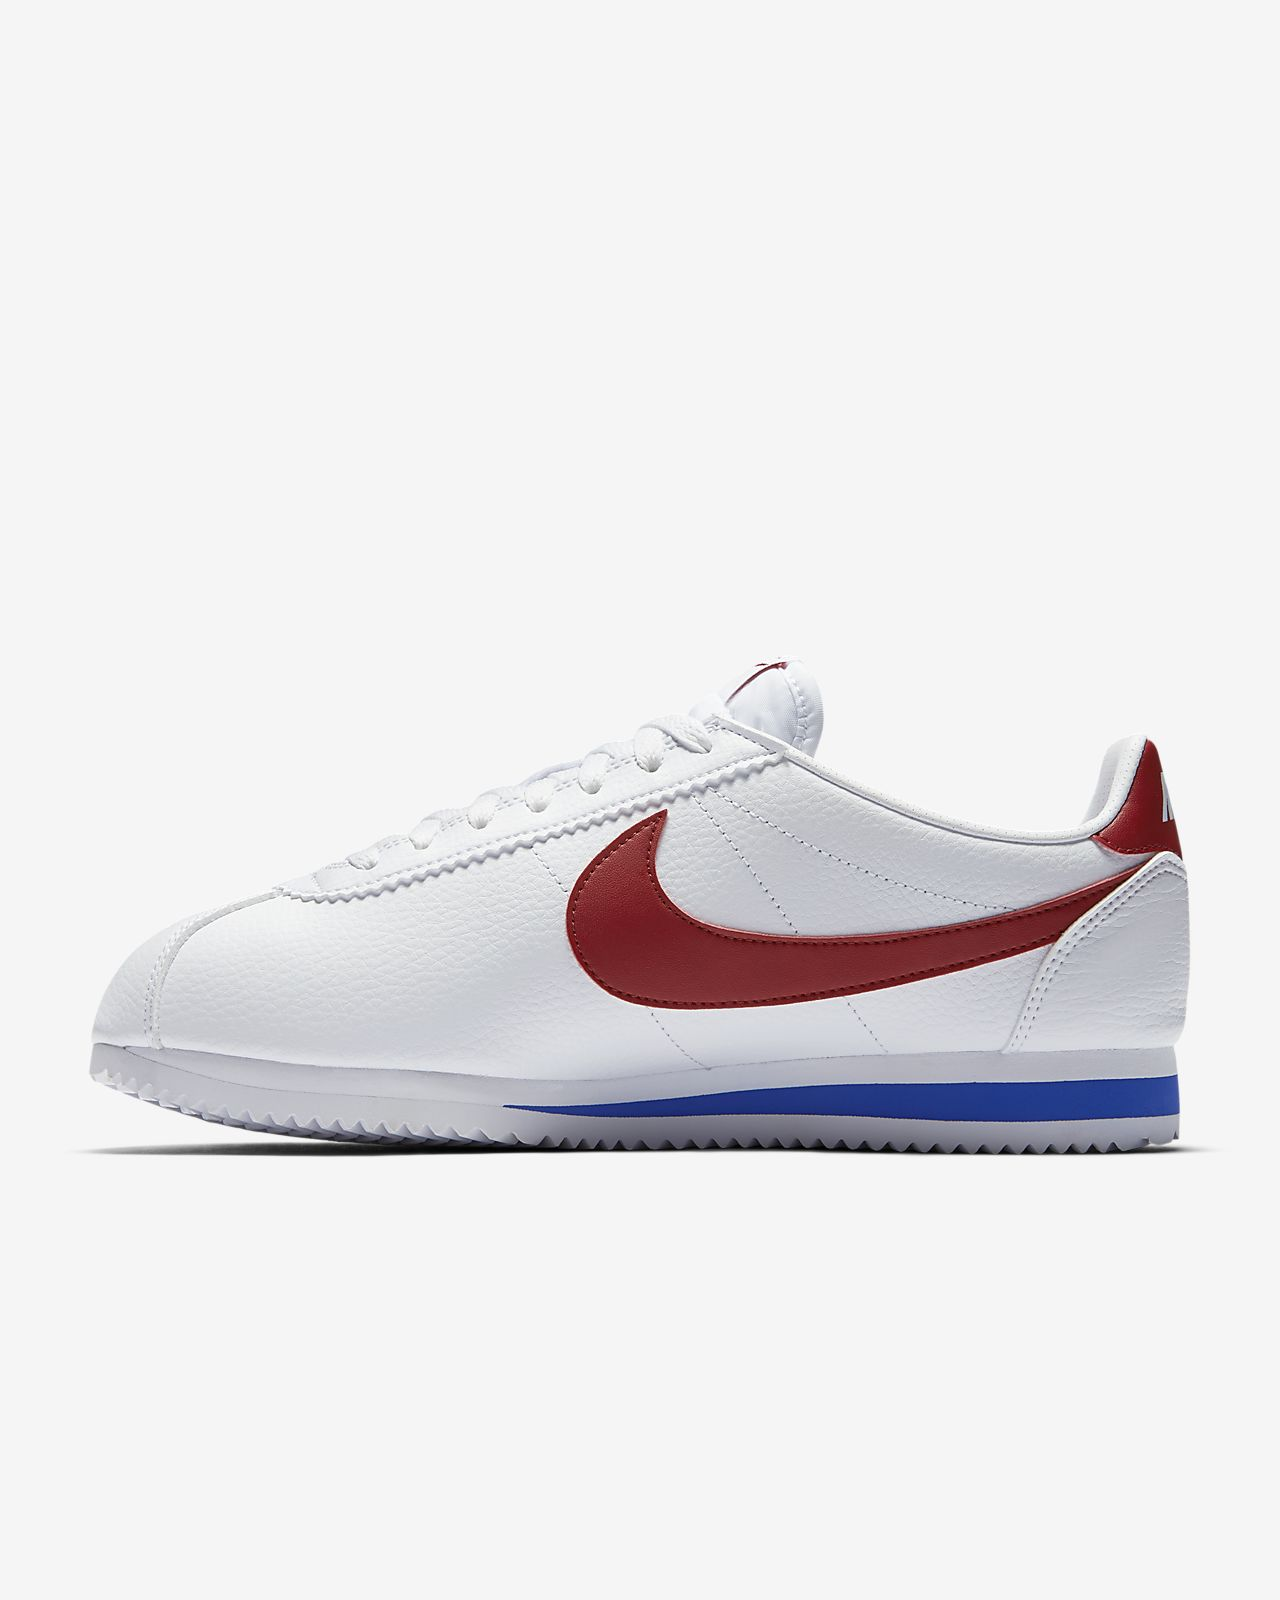 pretty cool sneakers for cheap new styles Chaussure Nike Classic Cortez pour Homme